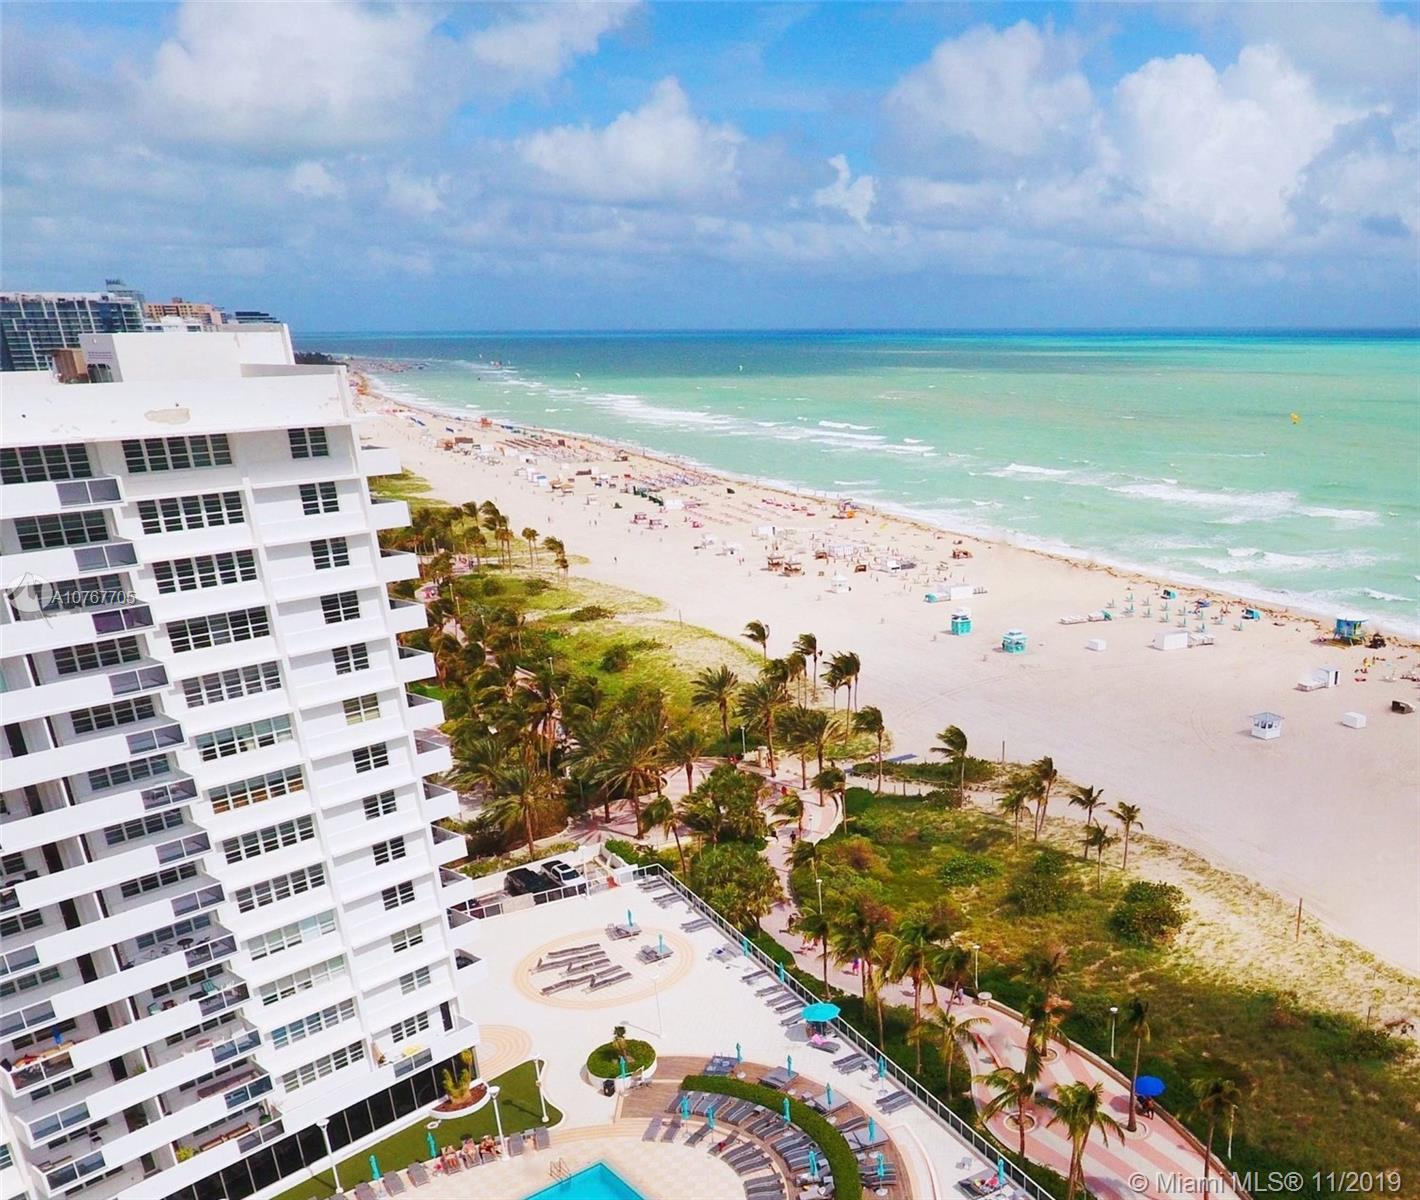 100 Lincoln Rd # 1218, Miami Beach, Florida 33139, 1 Bedroom Bedrooms, ,1 BathroomBathrooms,Residential,For Sale,100 Lincoln Rd # 1218,A10767705